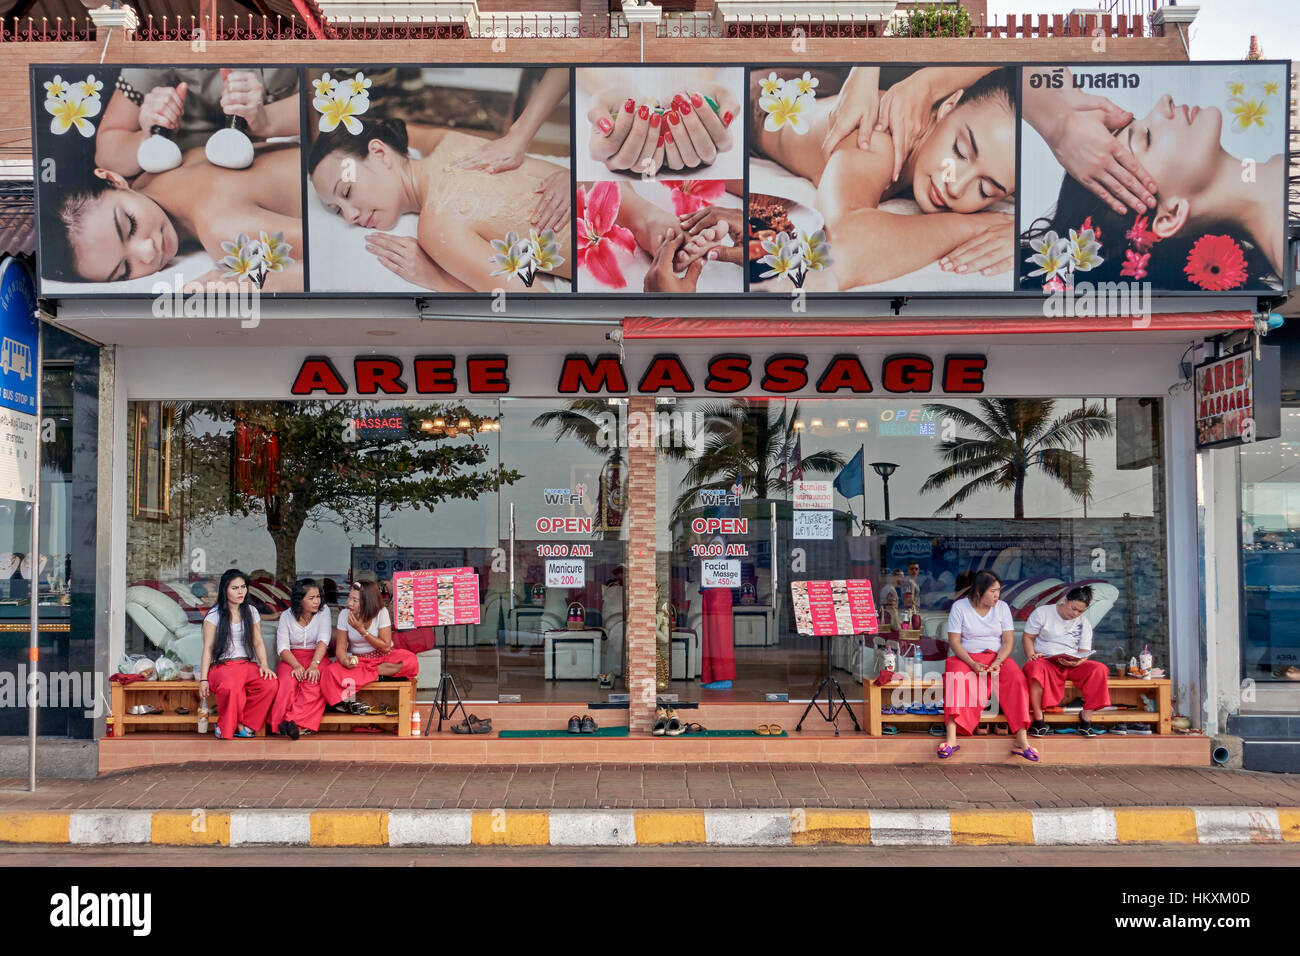 Thailand massage parlour with female masseuse in attendance. Thailand, Southeast Asia, - Stock Image